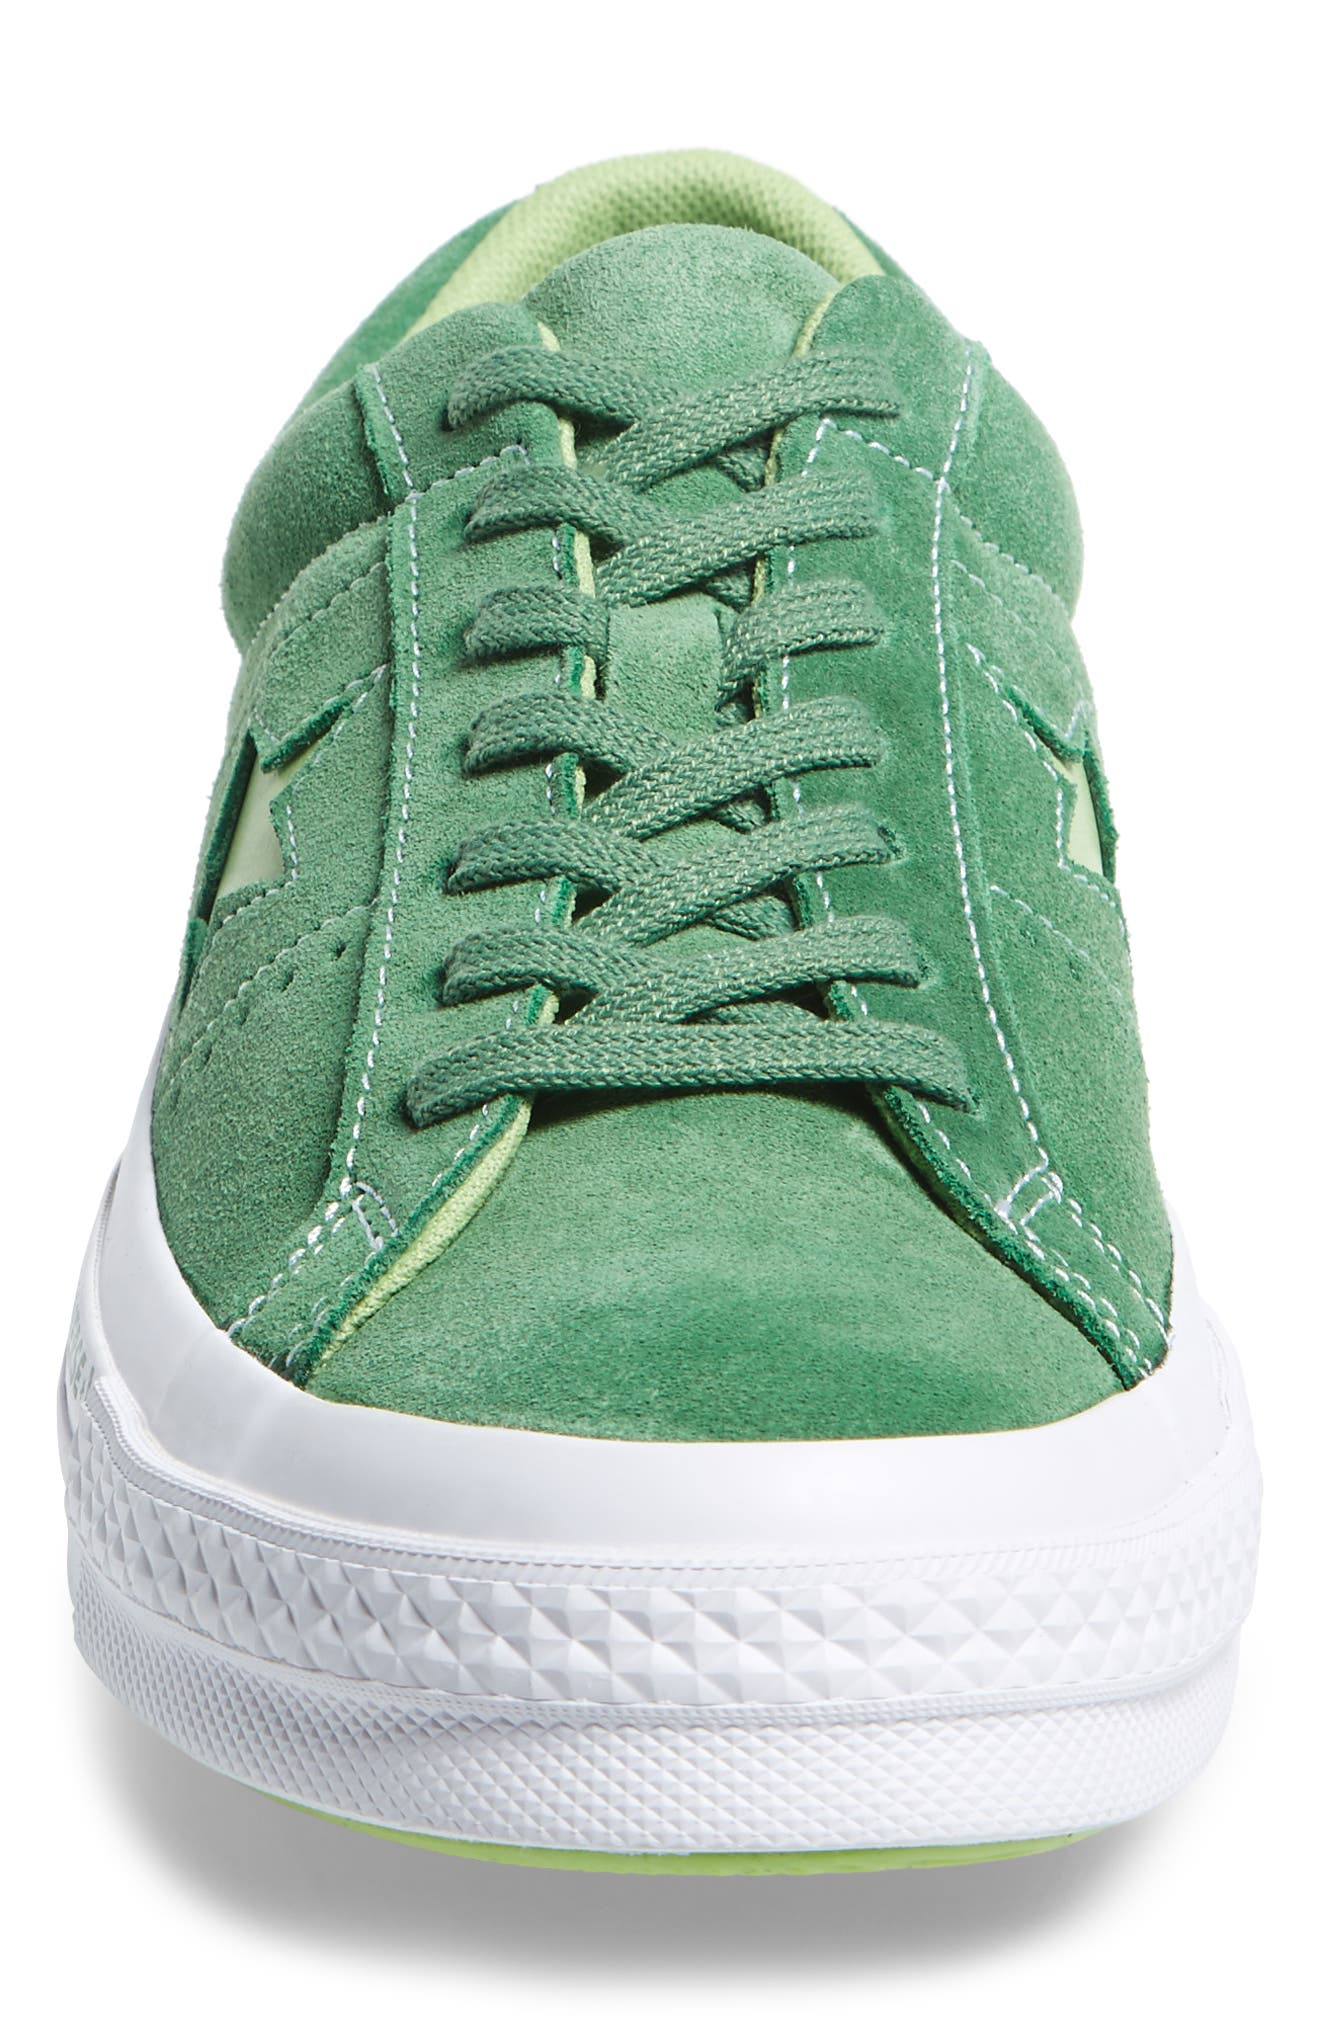 Chuck Taylor<sup>®</sup> One Star Pinstripe Sneaker,                             Alternate thumbnail 4, color,                             350